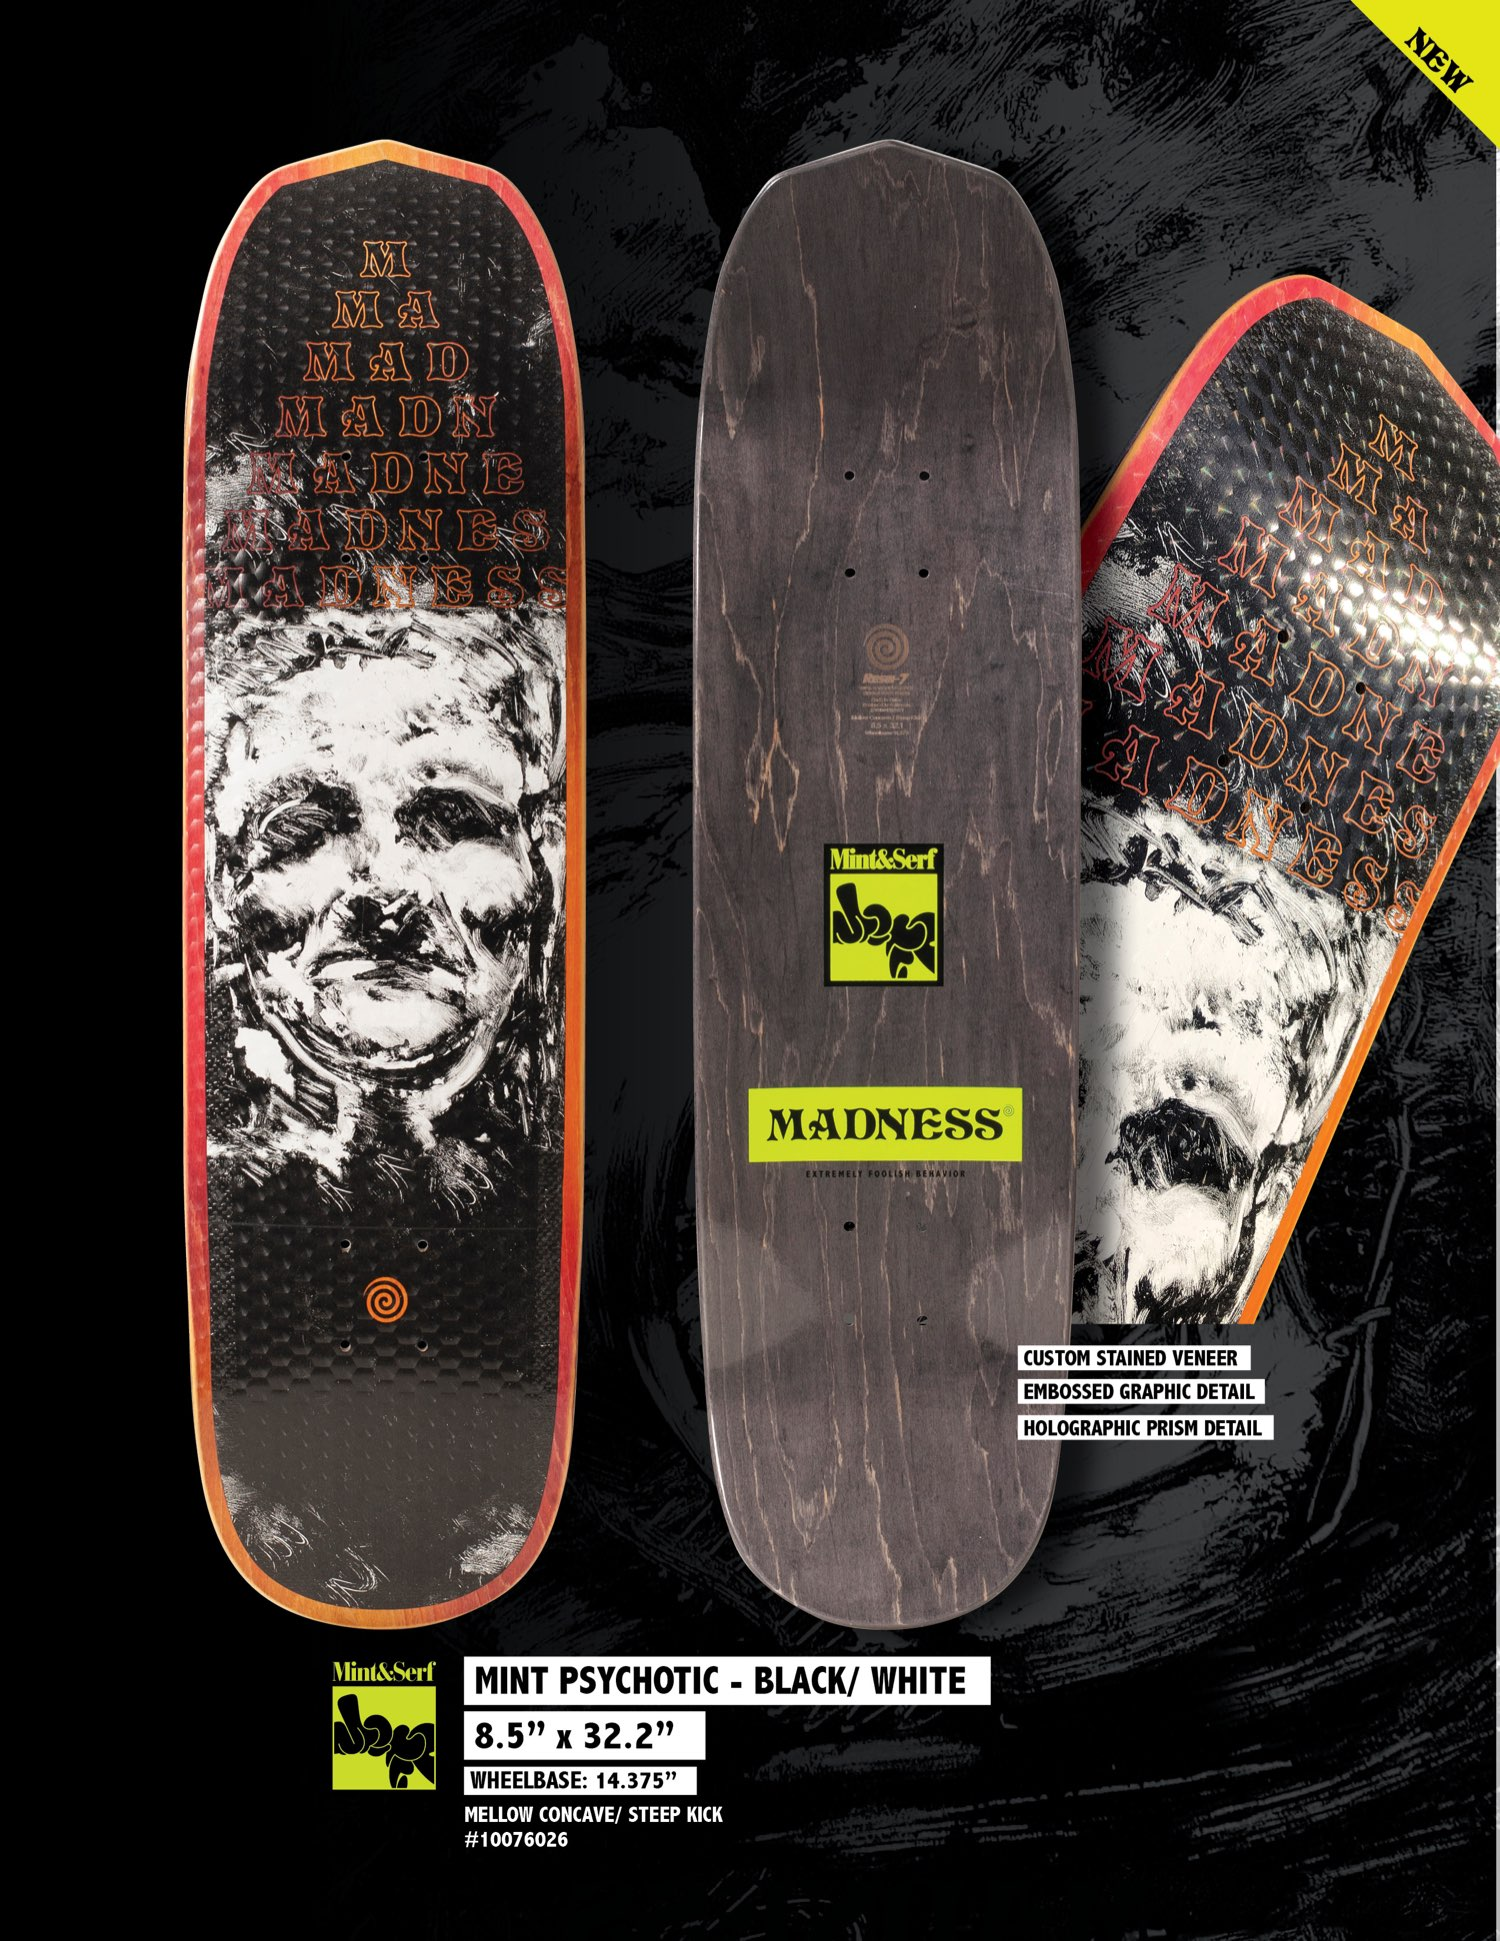 Madness_Skateboards_Summer19_Products15-15.jpg